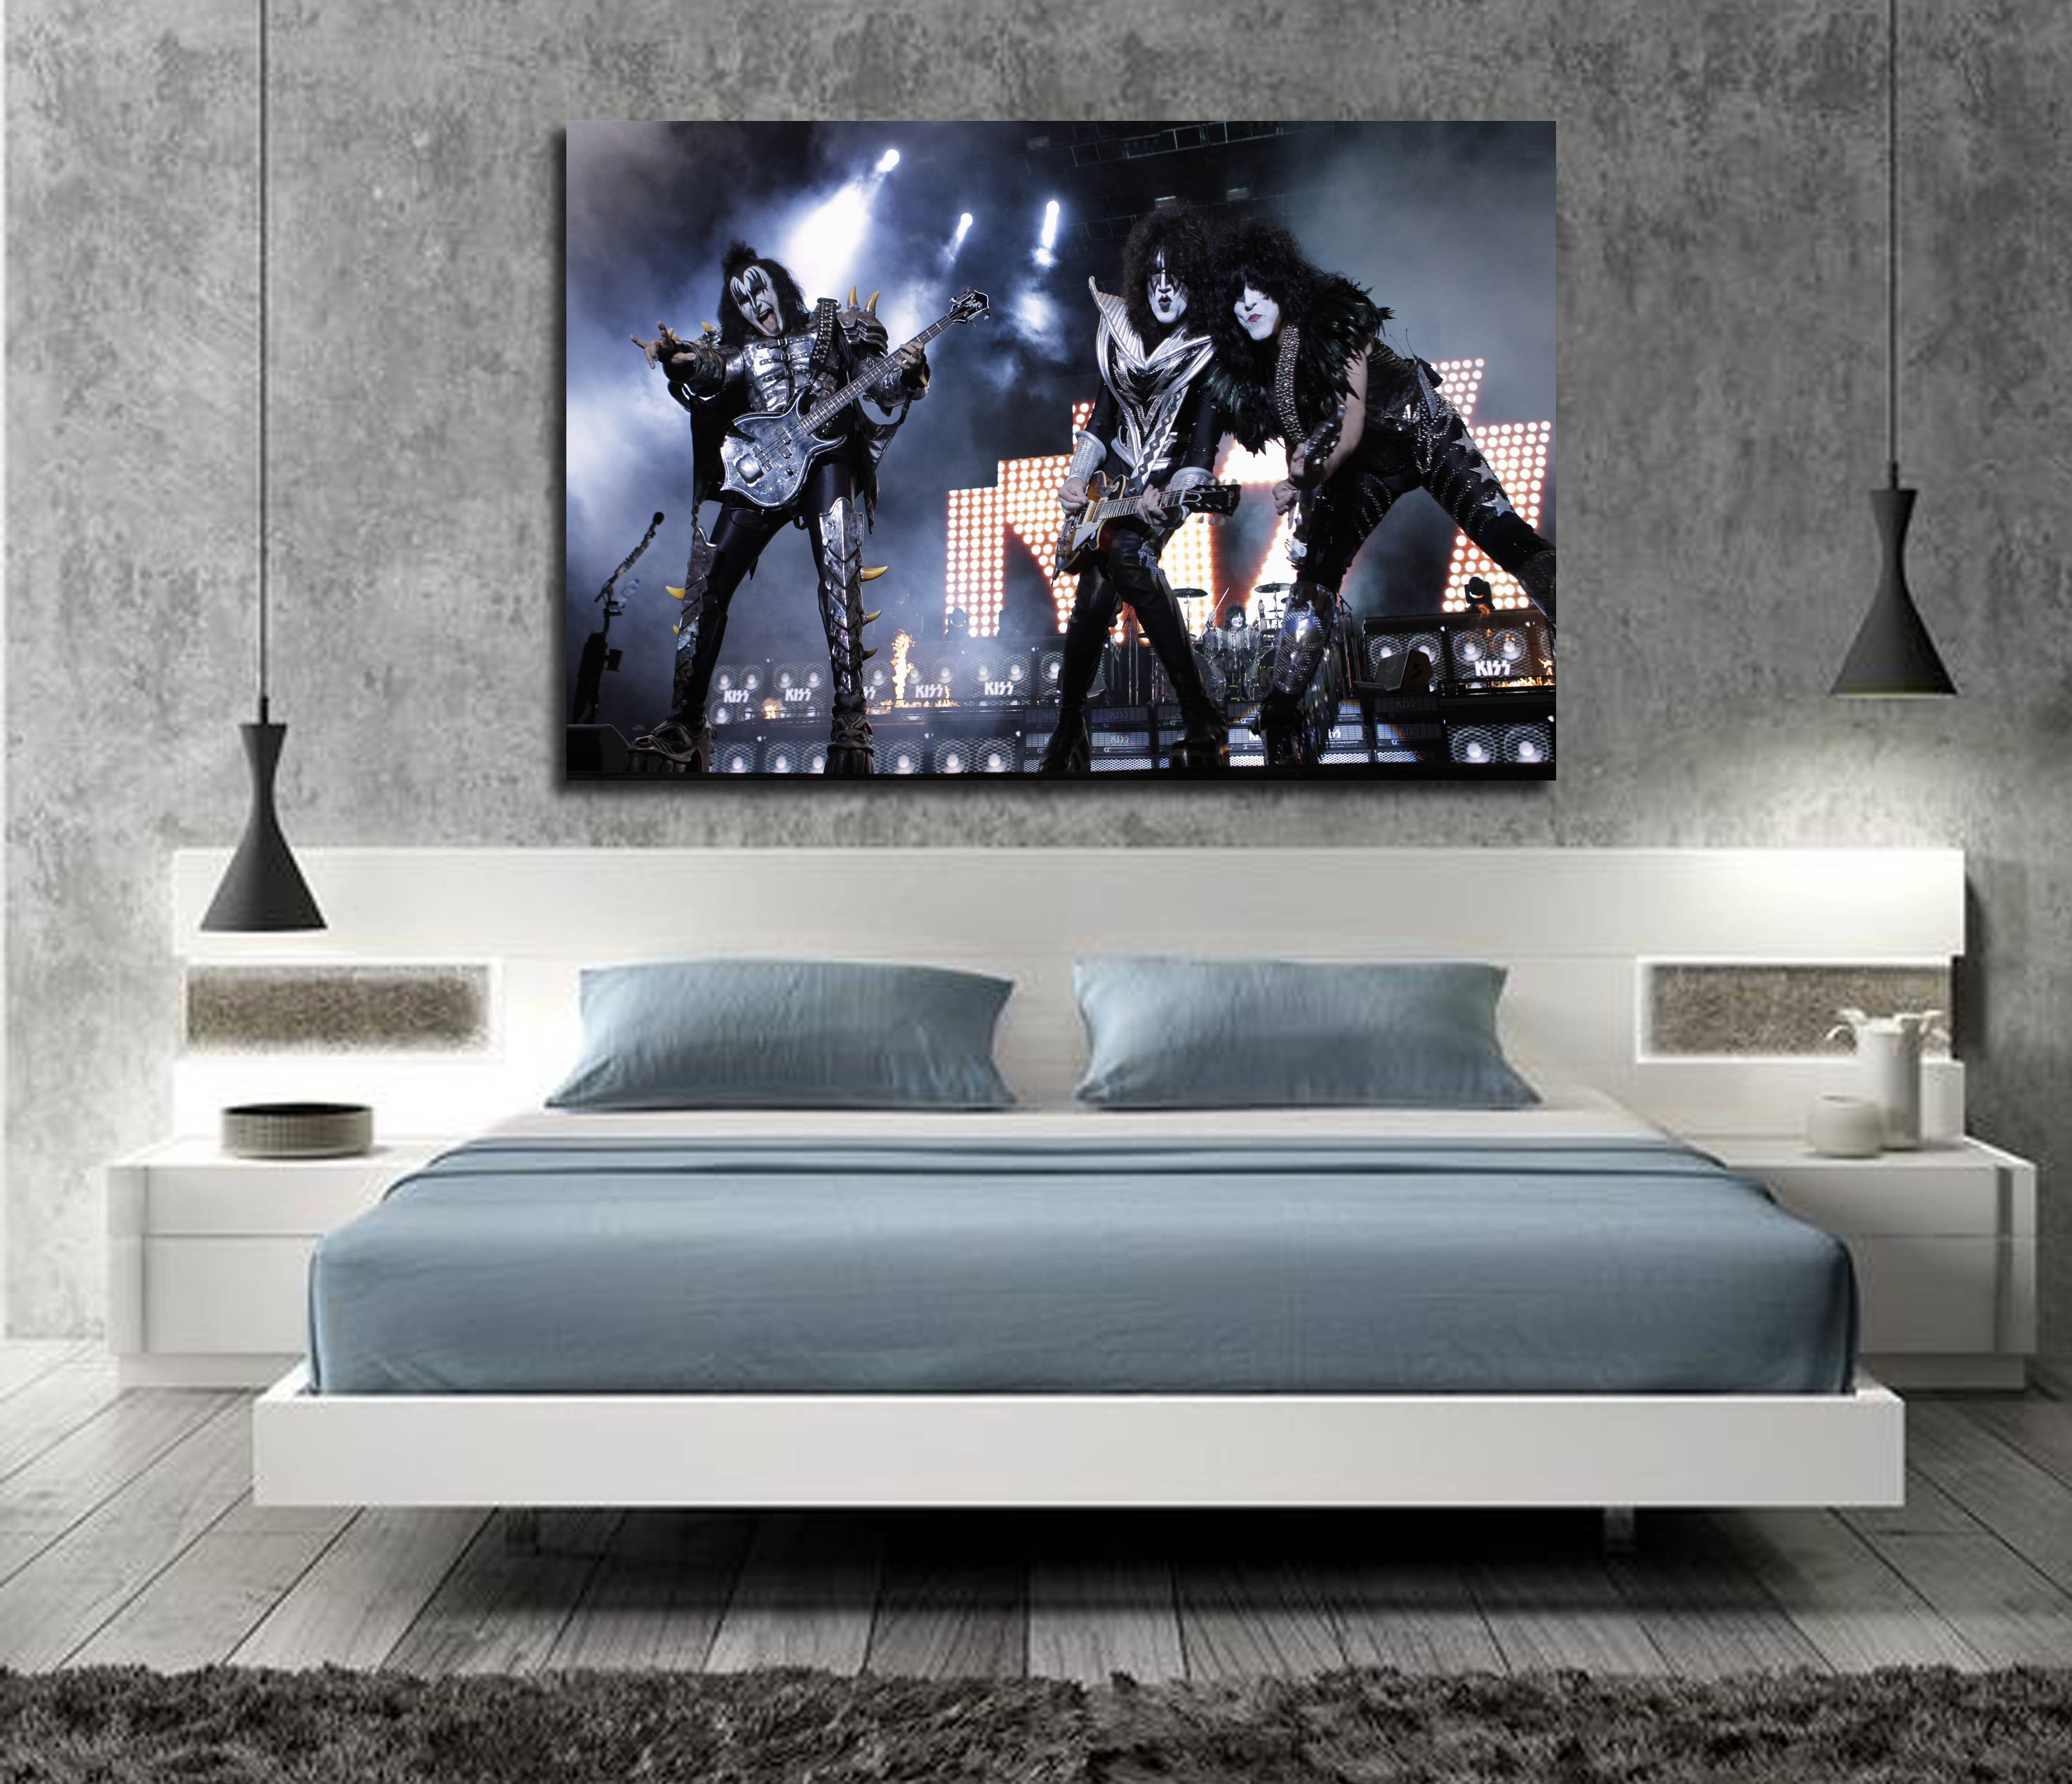 Nice Silk Fabric Cloth Wall Poster Print KISS Band Heavy Metal Music